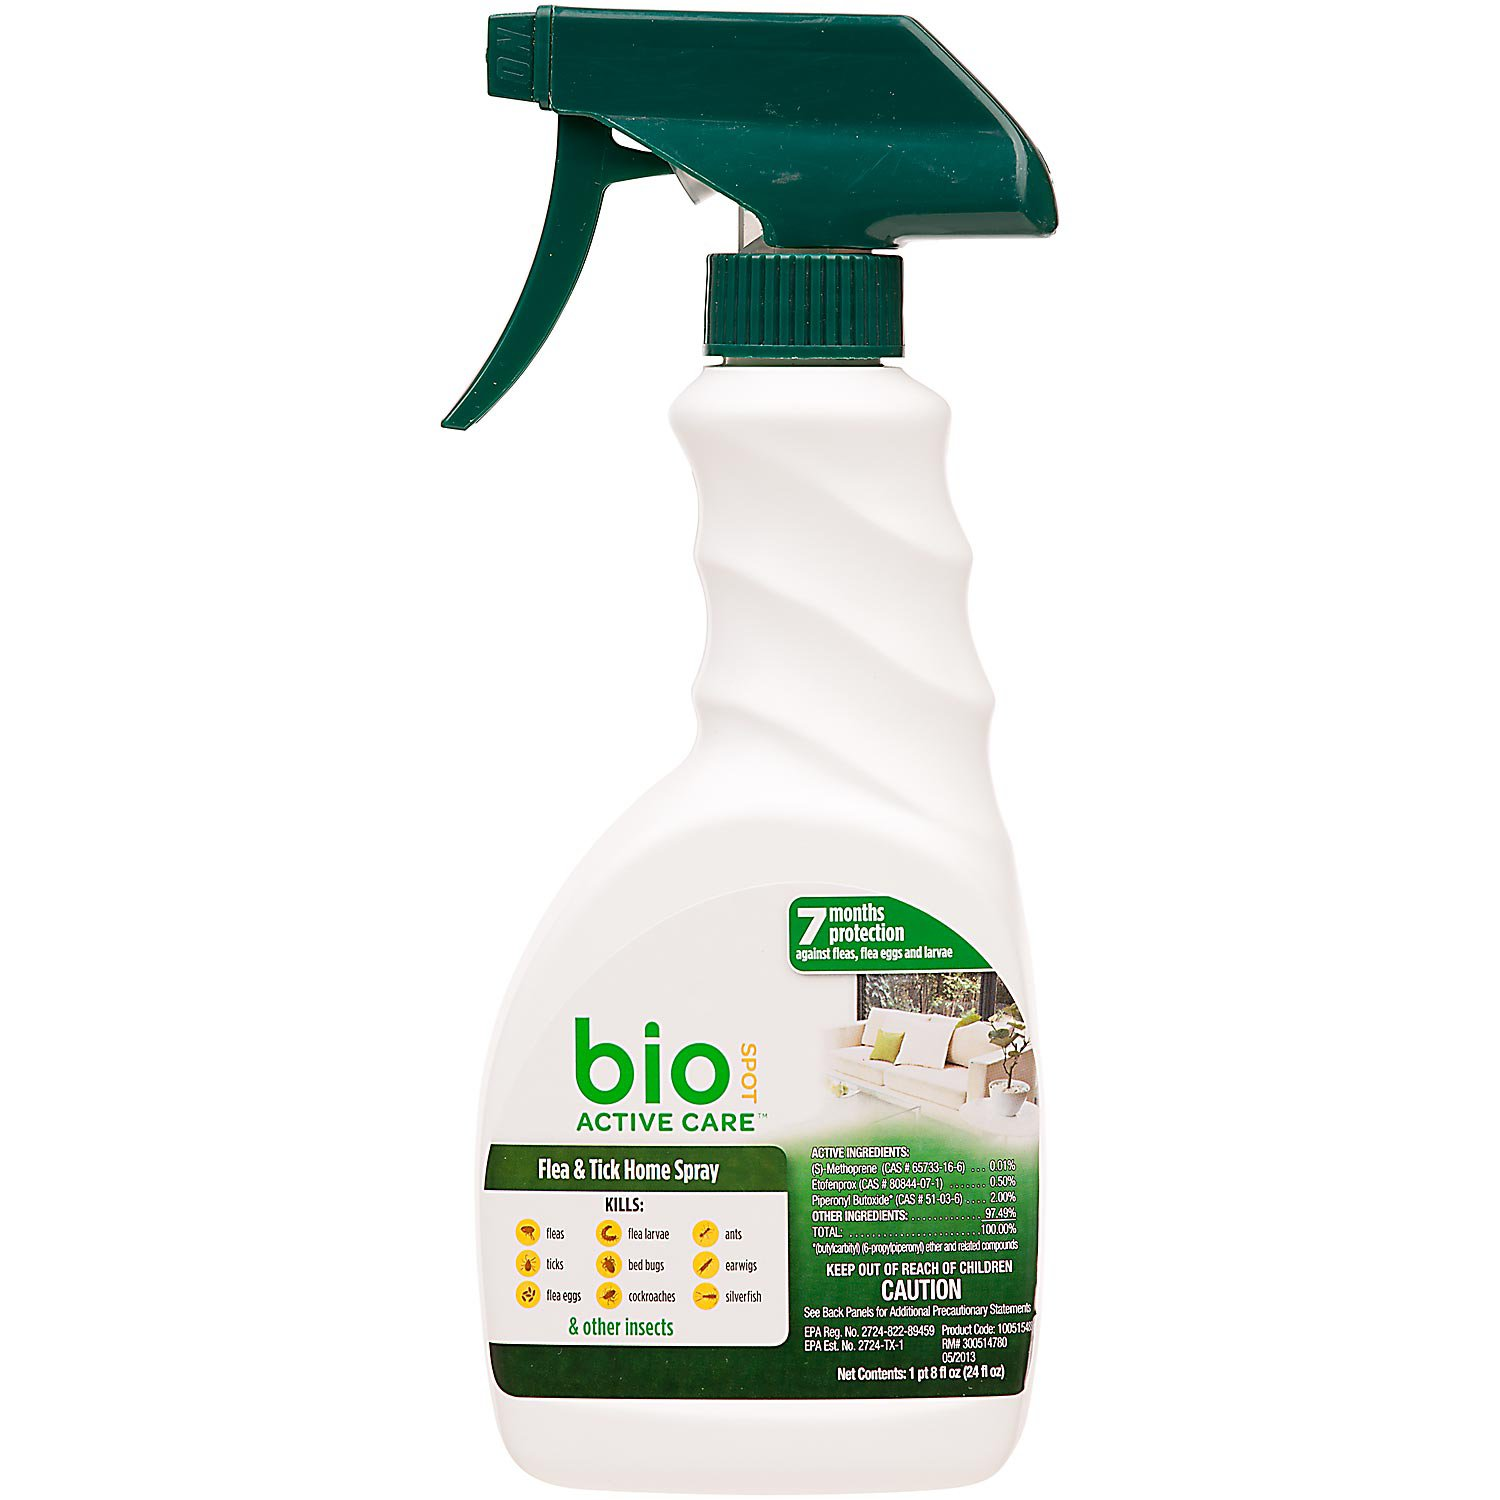 Bio Spot Active Care Flea & Tick Home Spray